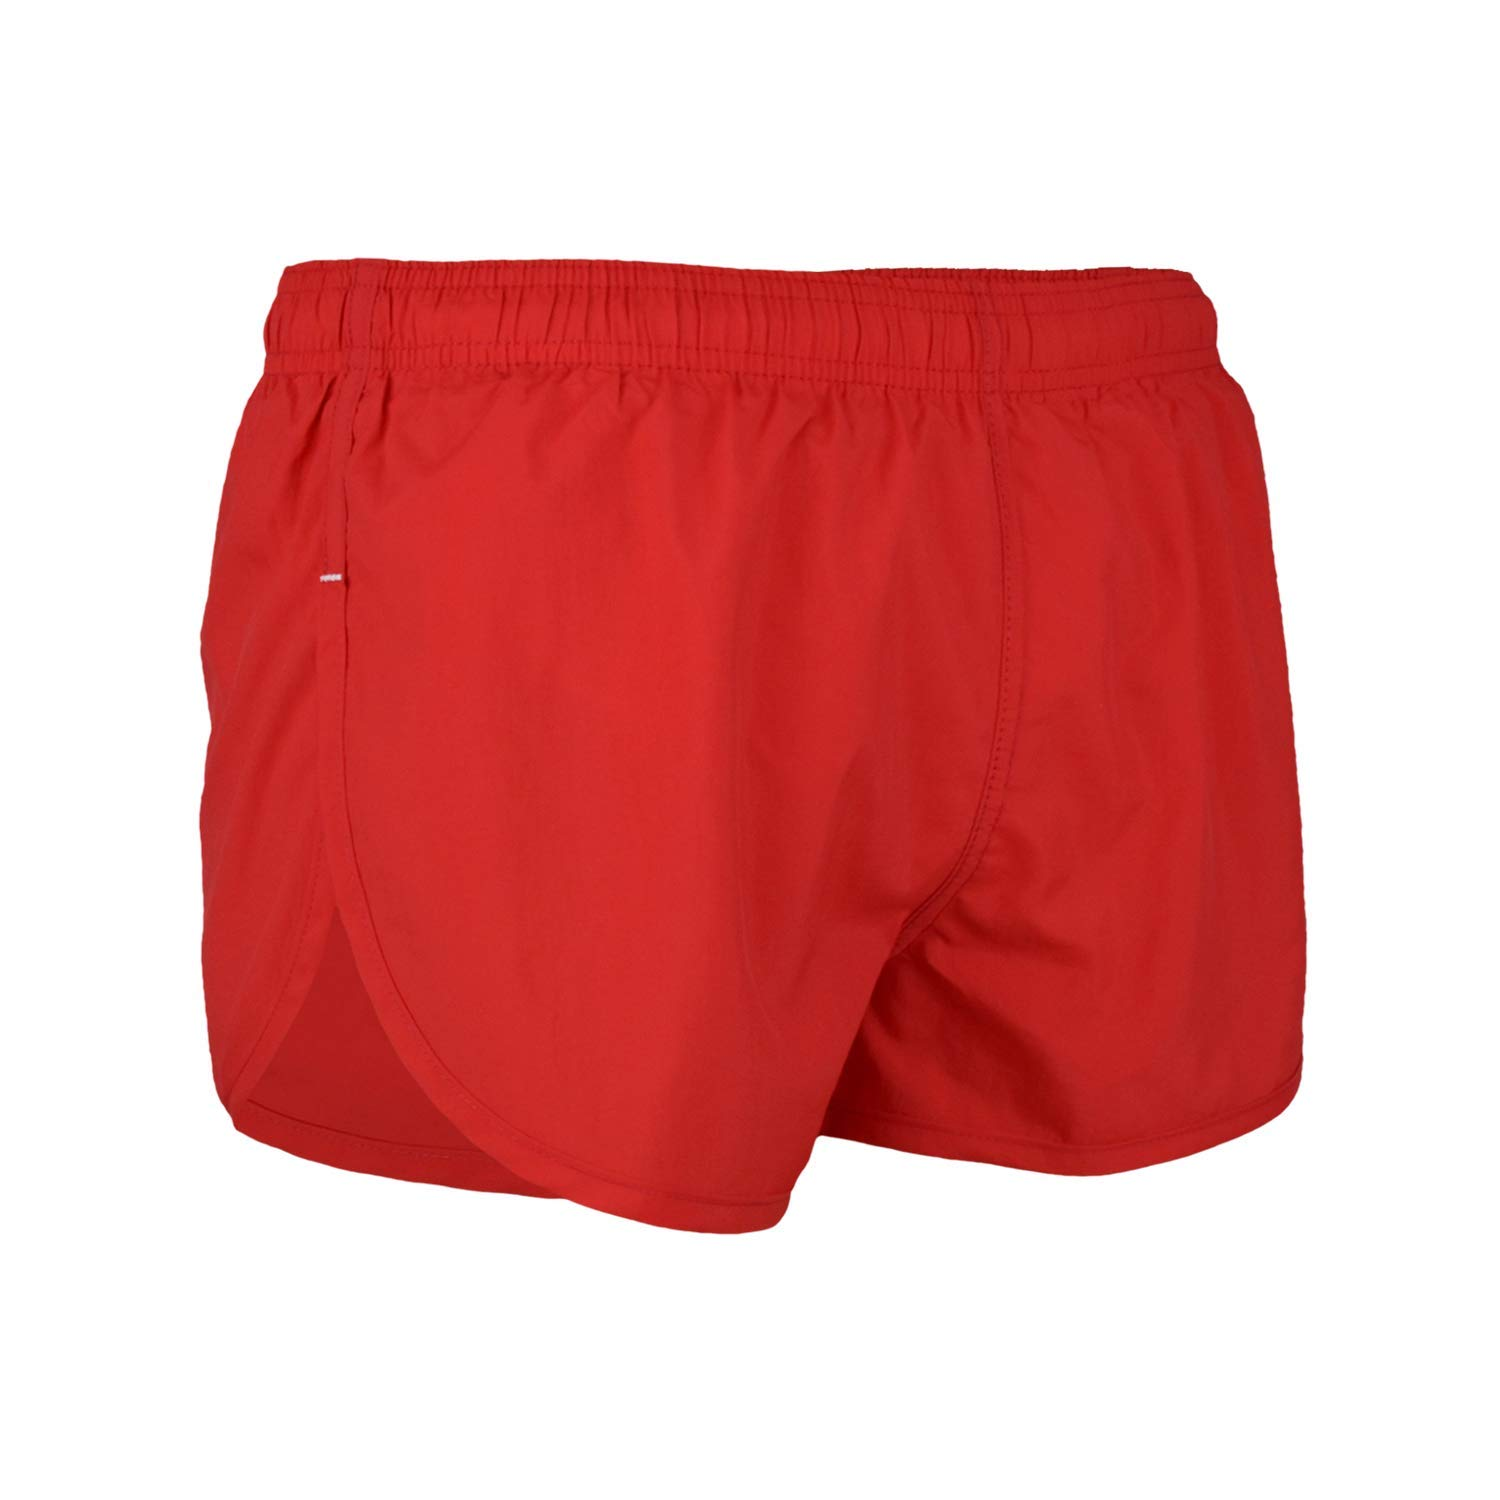 8adbadc88a95 Get Quotations · VBRANDED Men s Basic American Flag Running Shorts and Swimwear  Trunks Red S